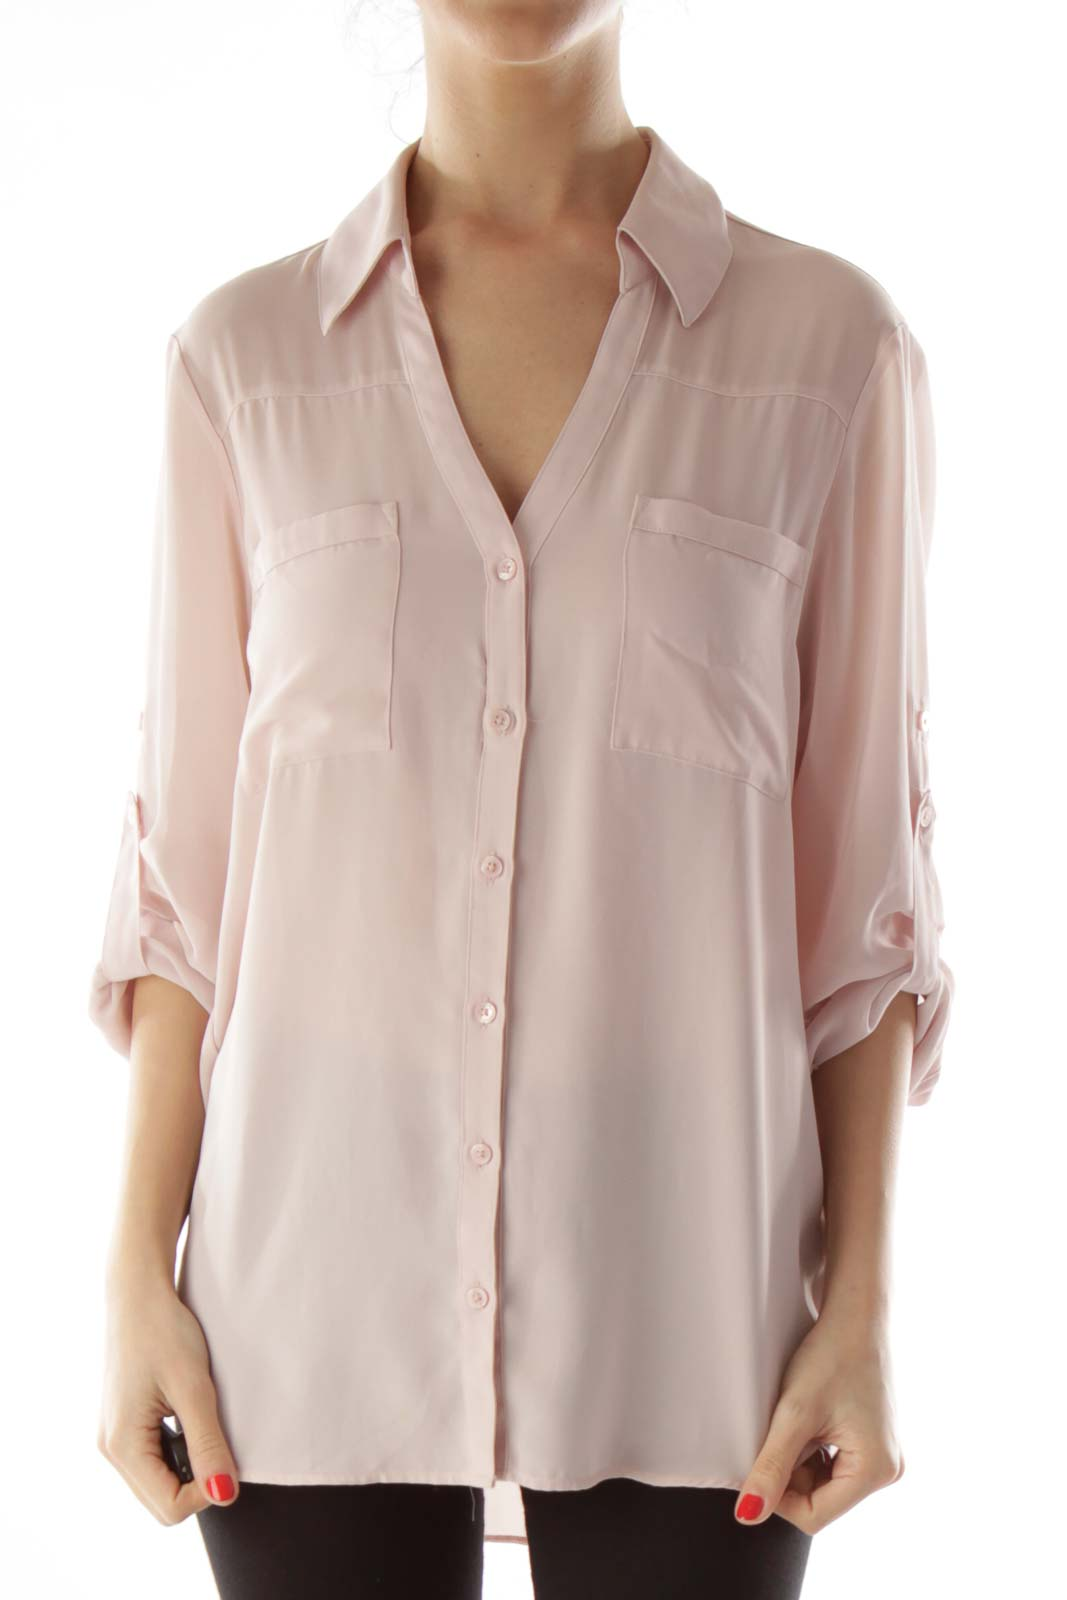 Pink Pocketed Buttoned Up Blouse